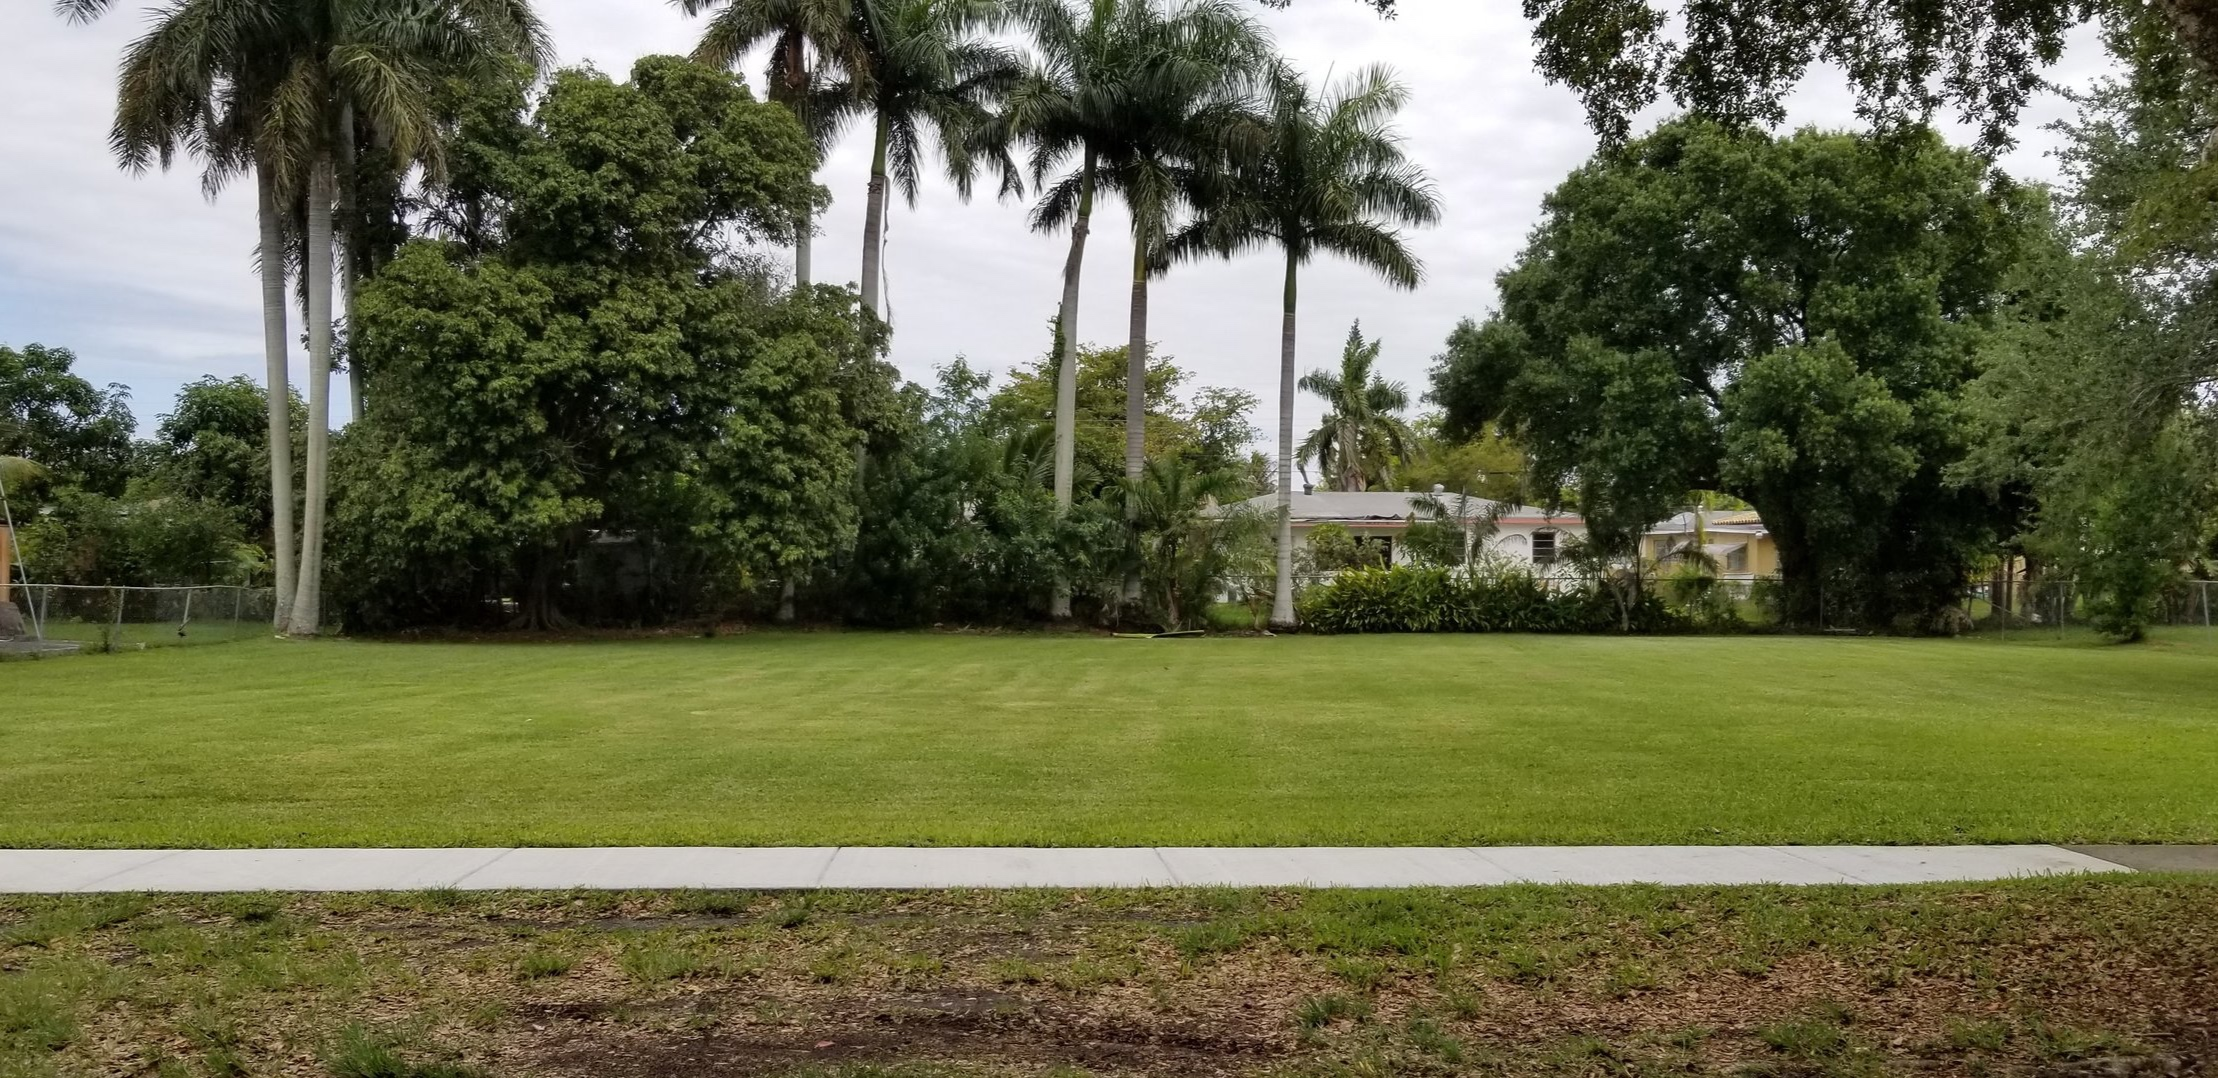 This vacant lot (designated a repetitive loss property) in a City of North Miami neighborhood is being redesigned.